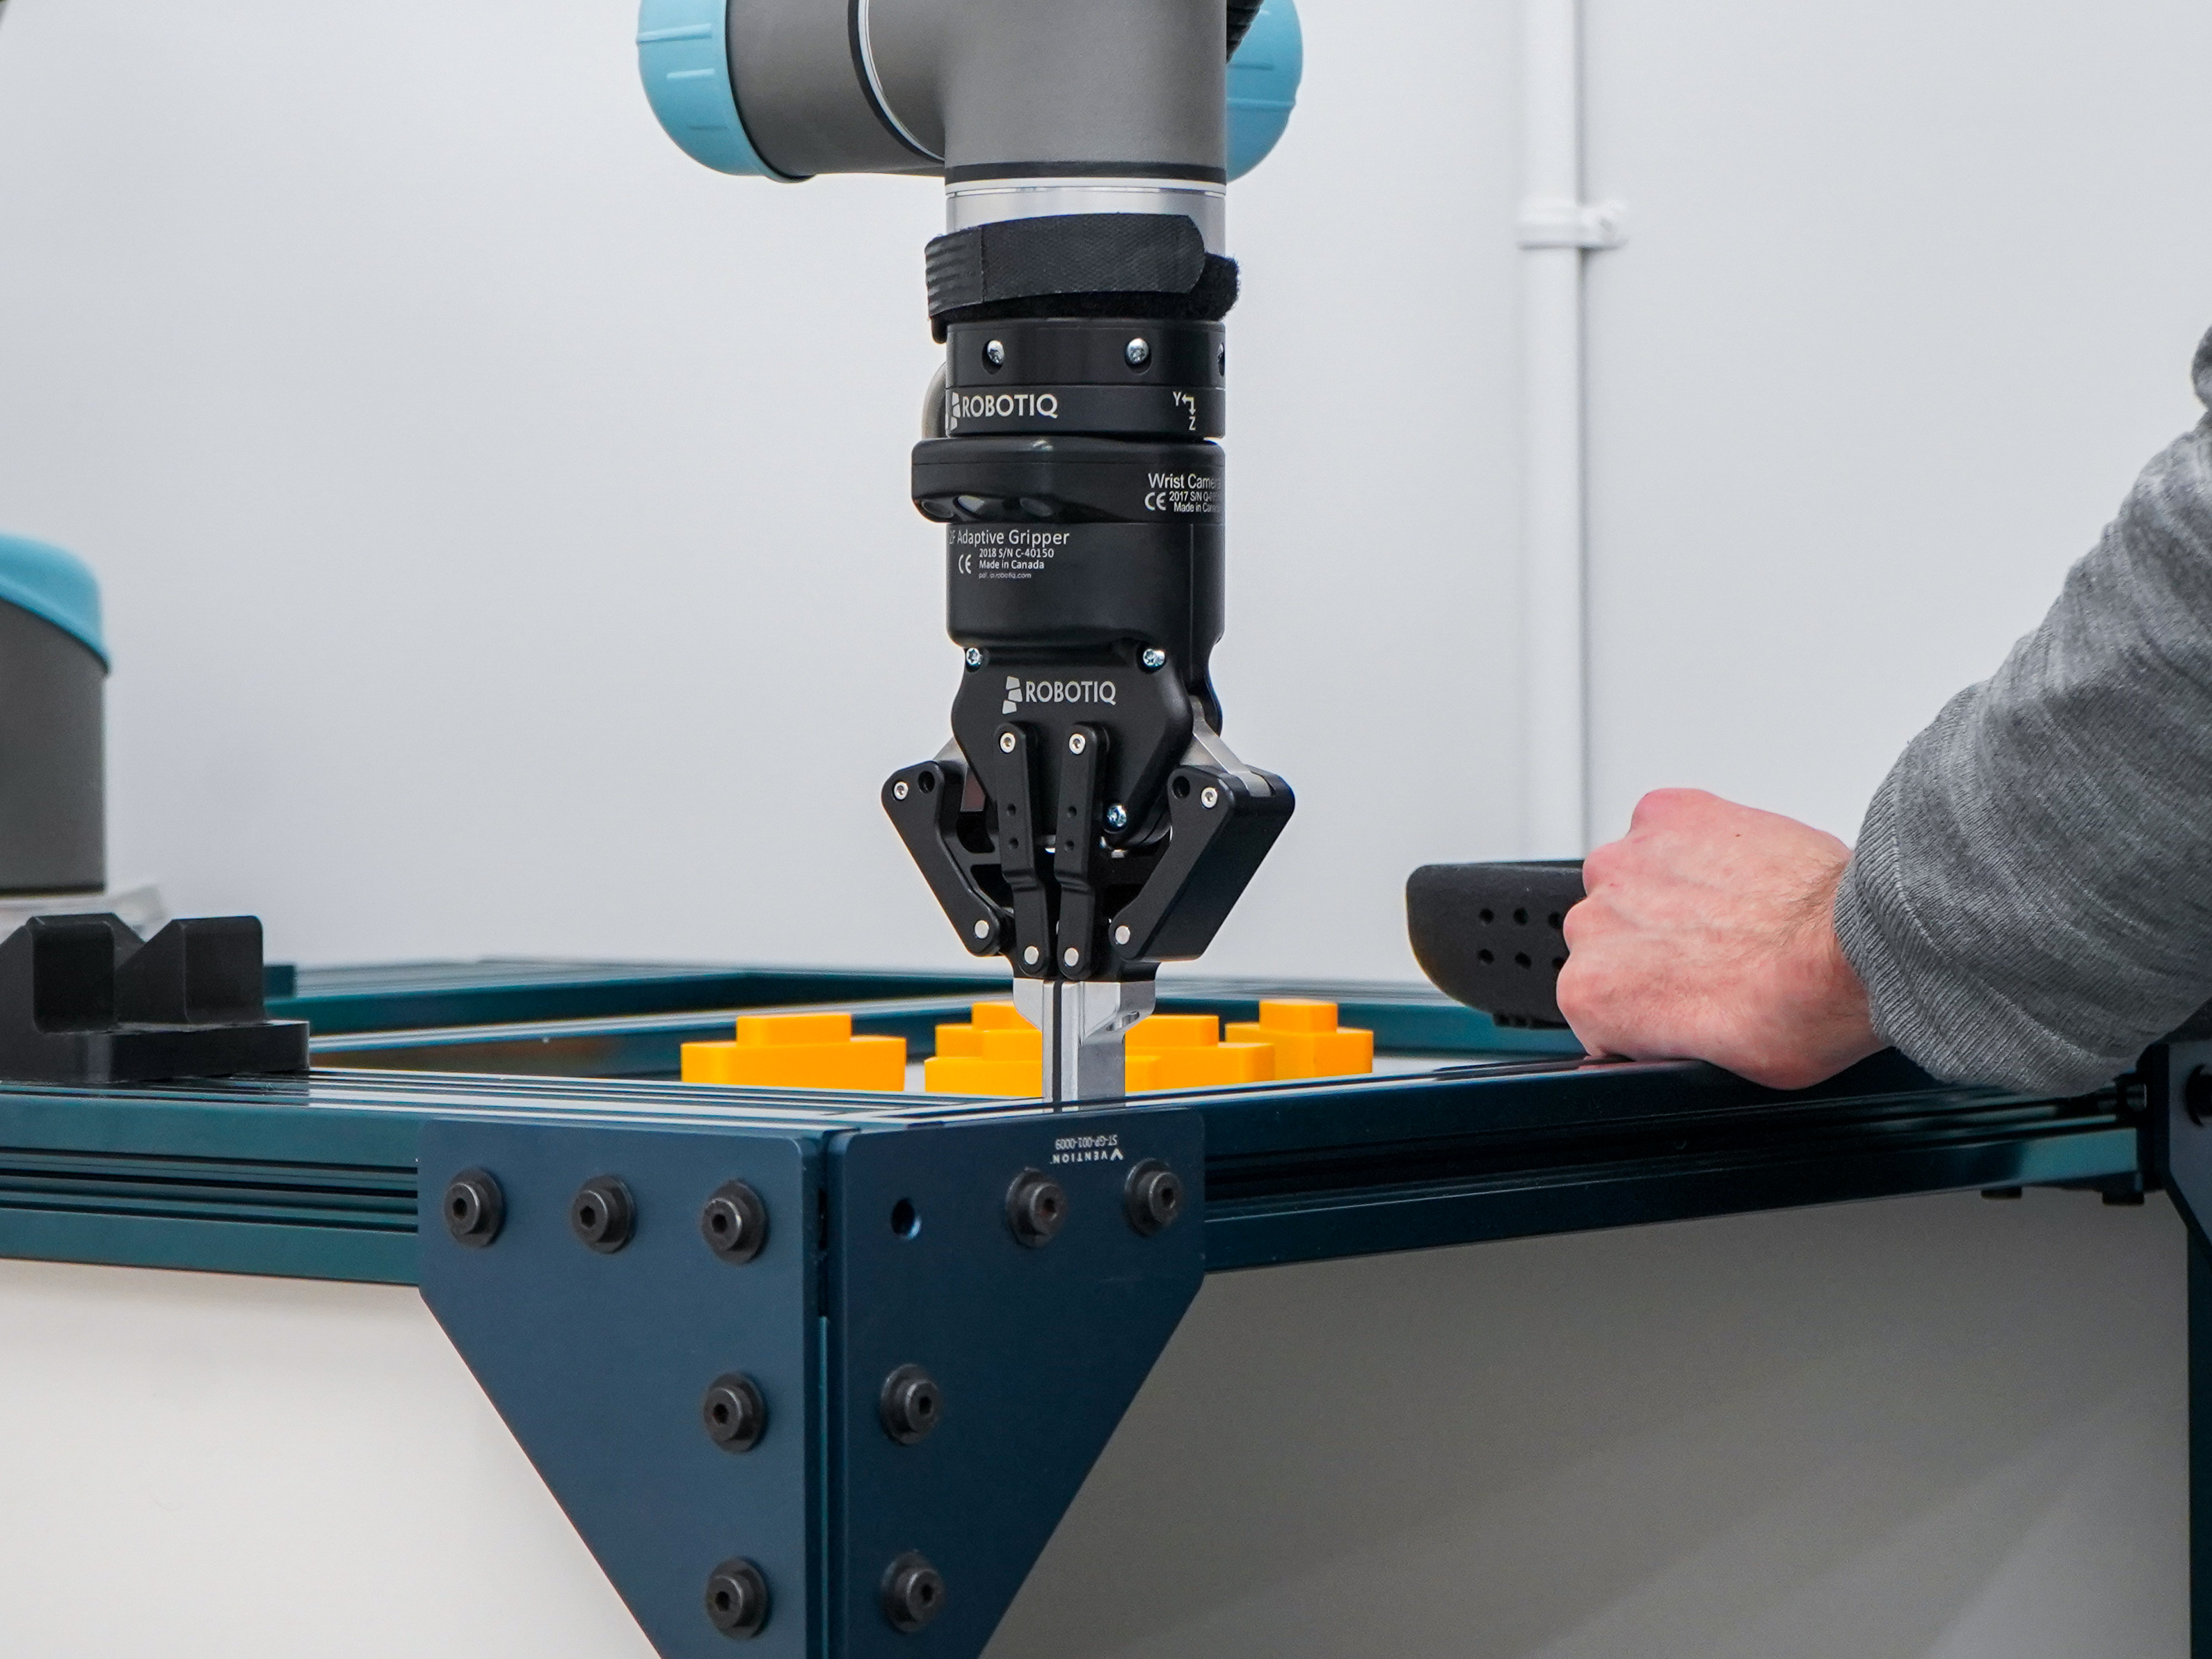 10 Solutions to Improve Robot Vision With Shiny Objects